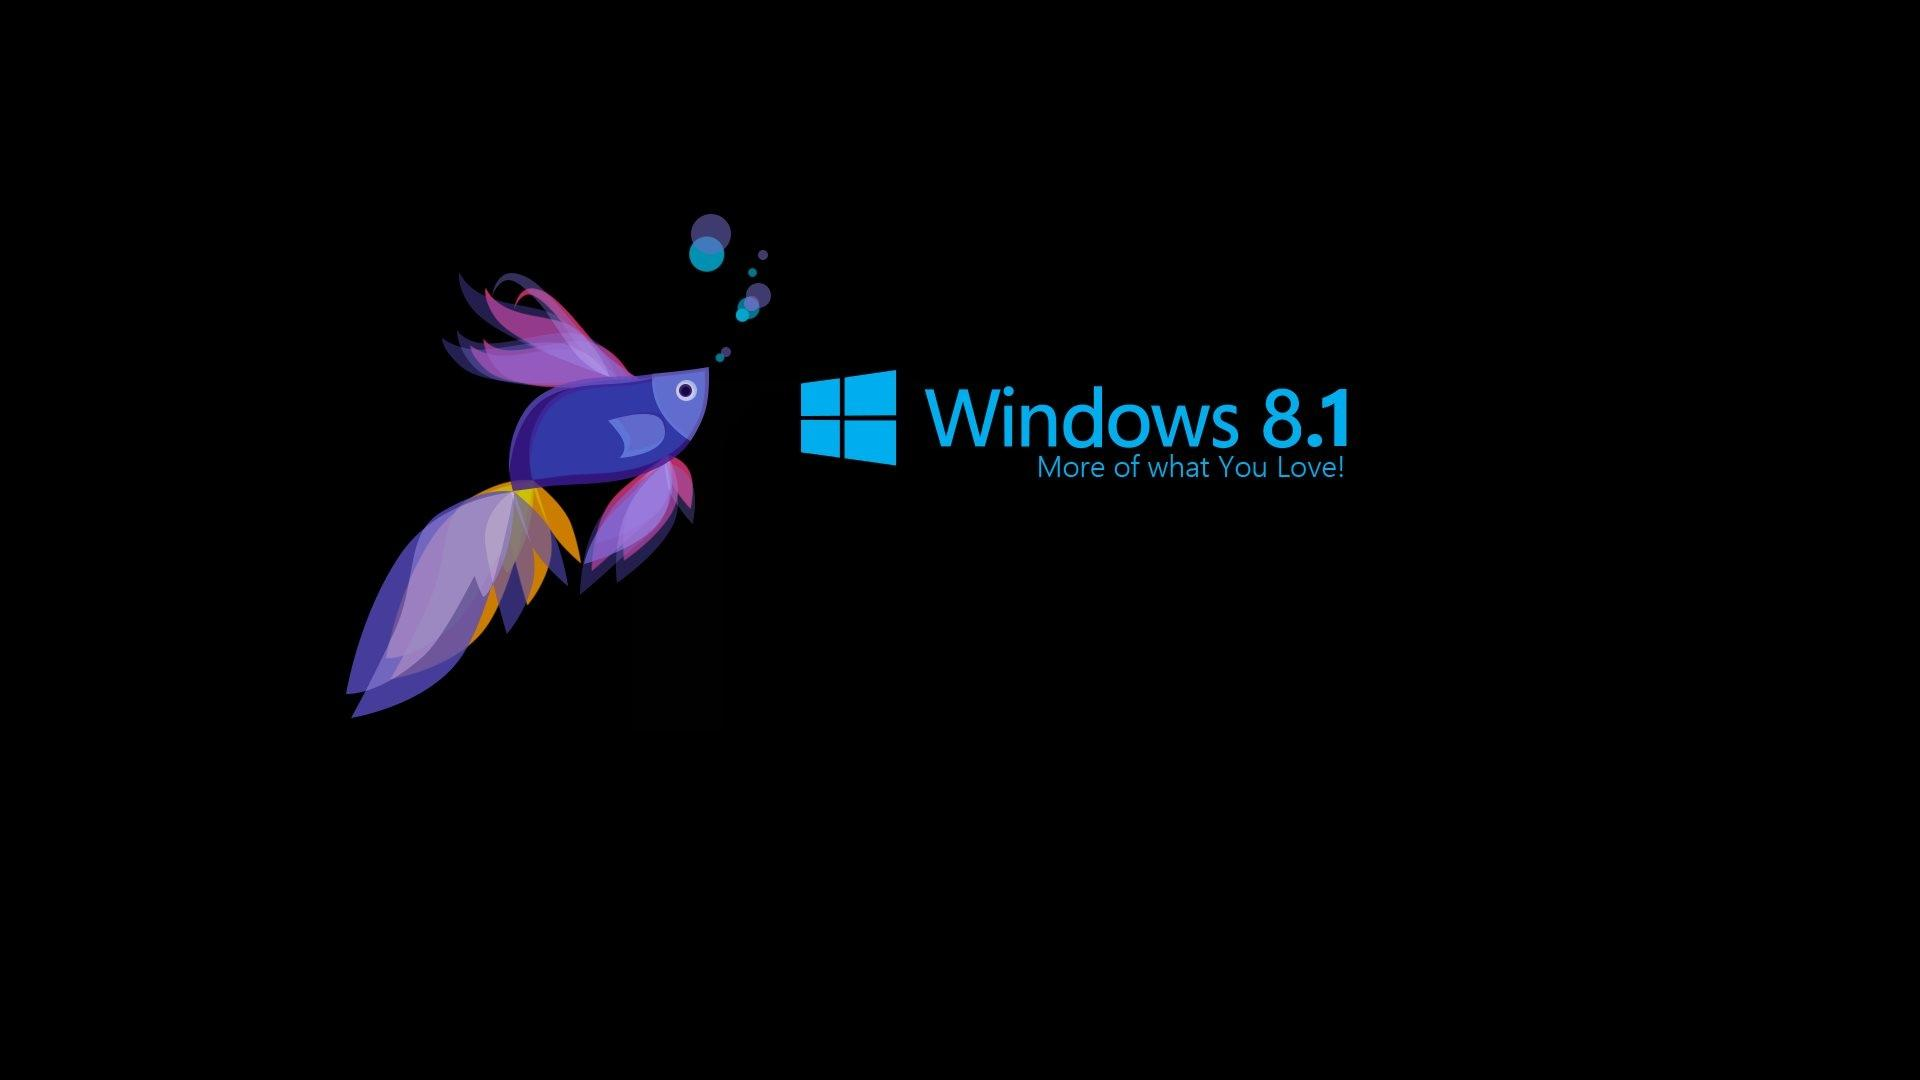 Windows 8.1 wallpapers HD quality